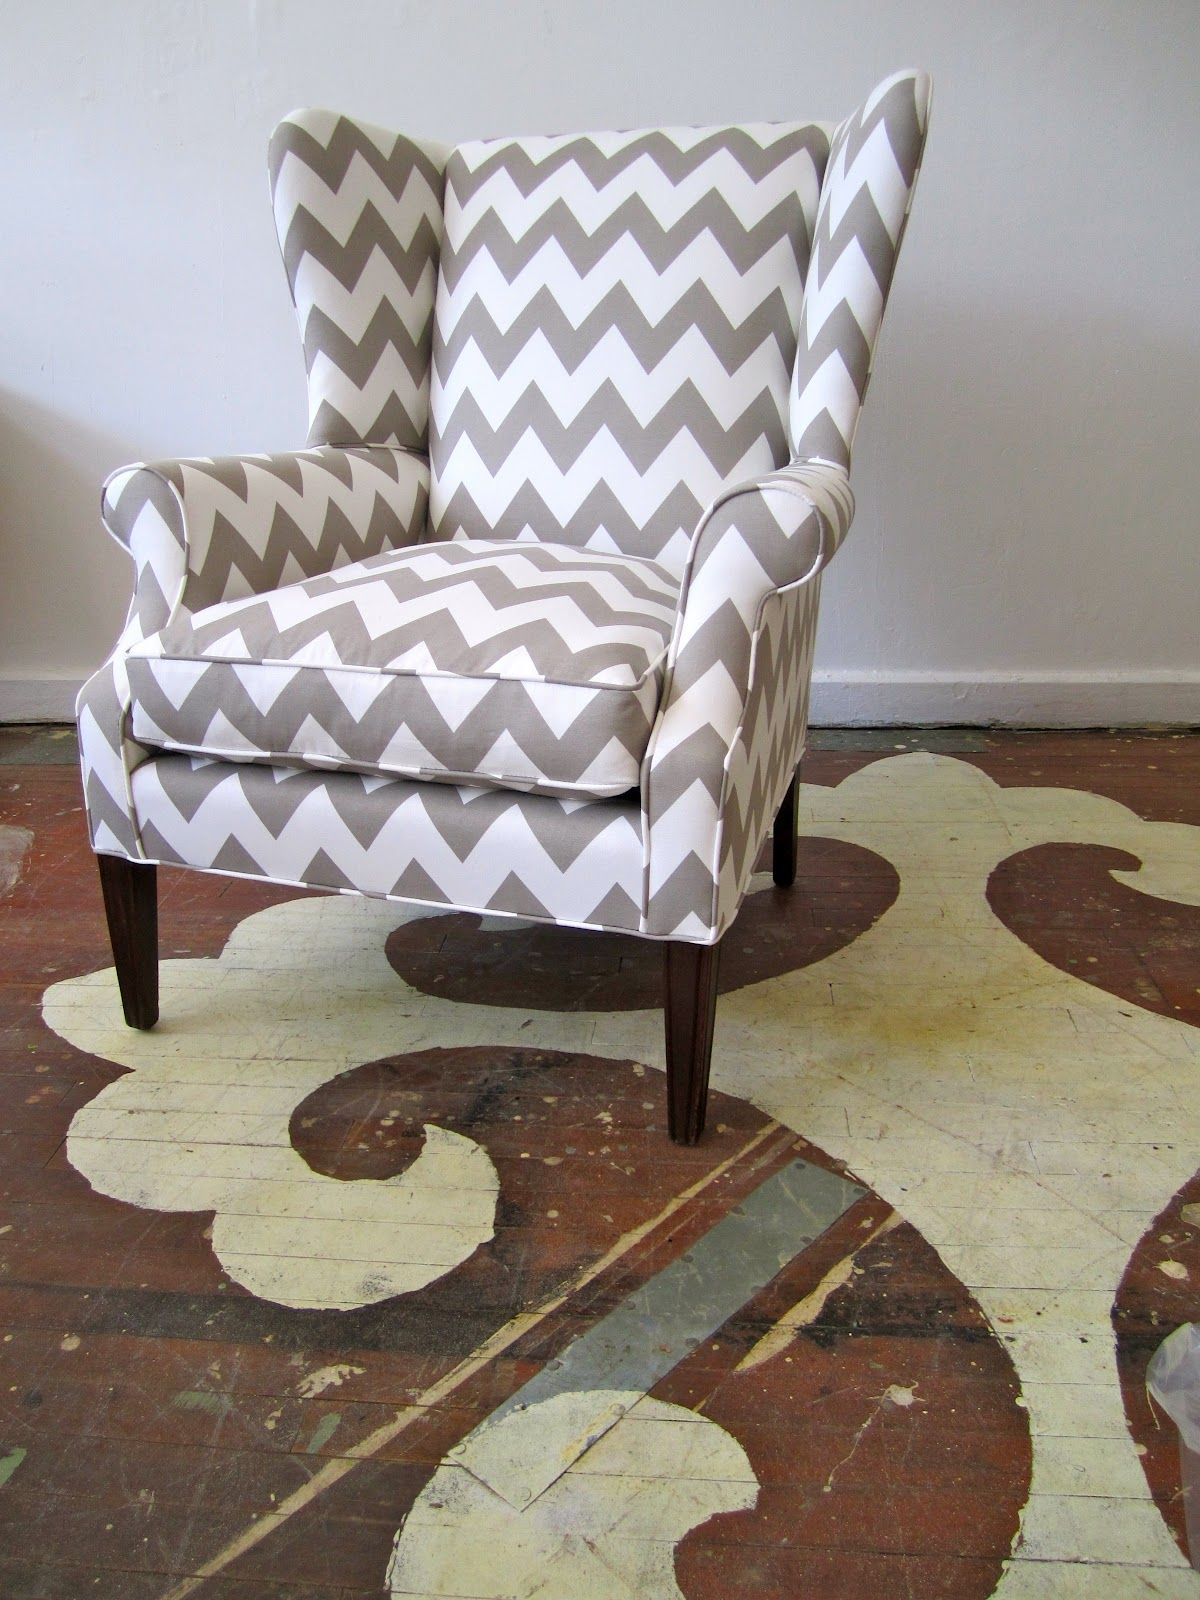 Chevron wing chairs - Caitlin wilson design fabric greige zabeel chevron chair reupholstered by chairloom in philly so